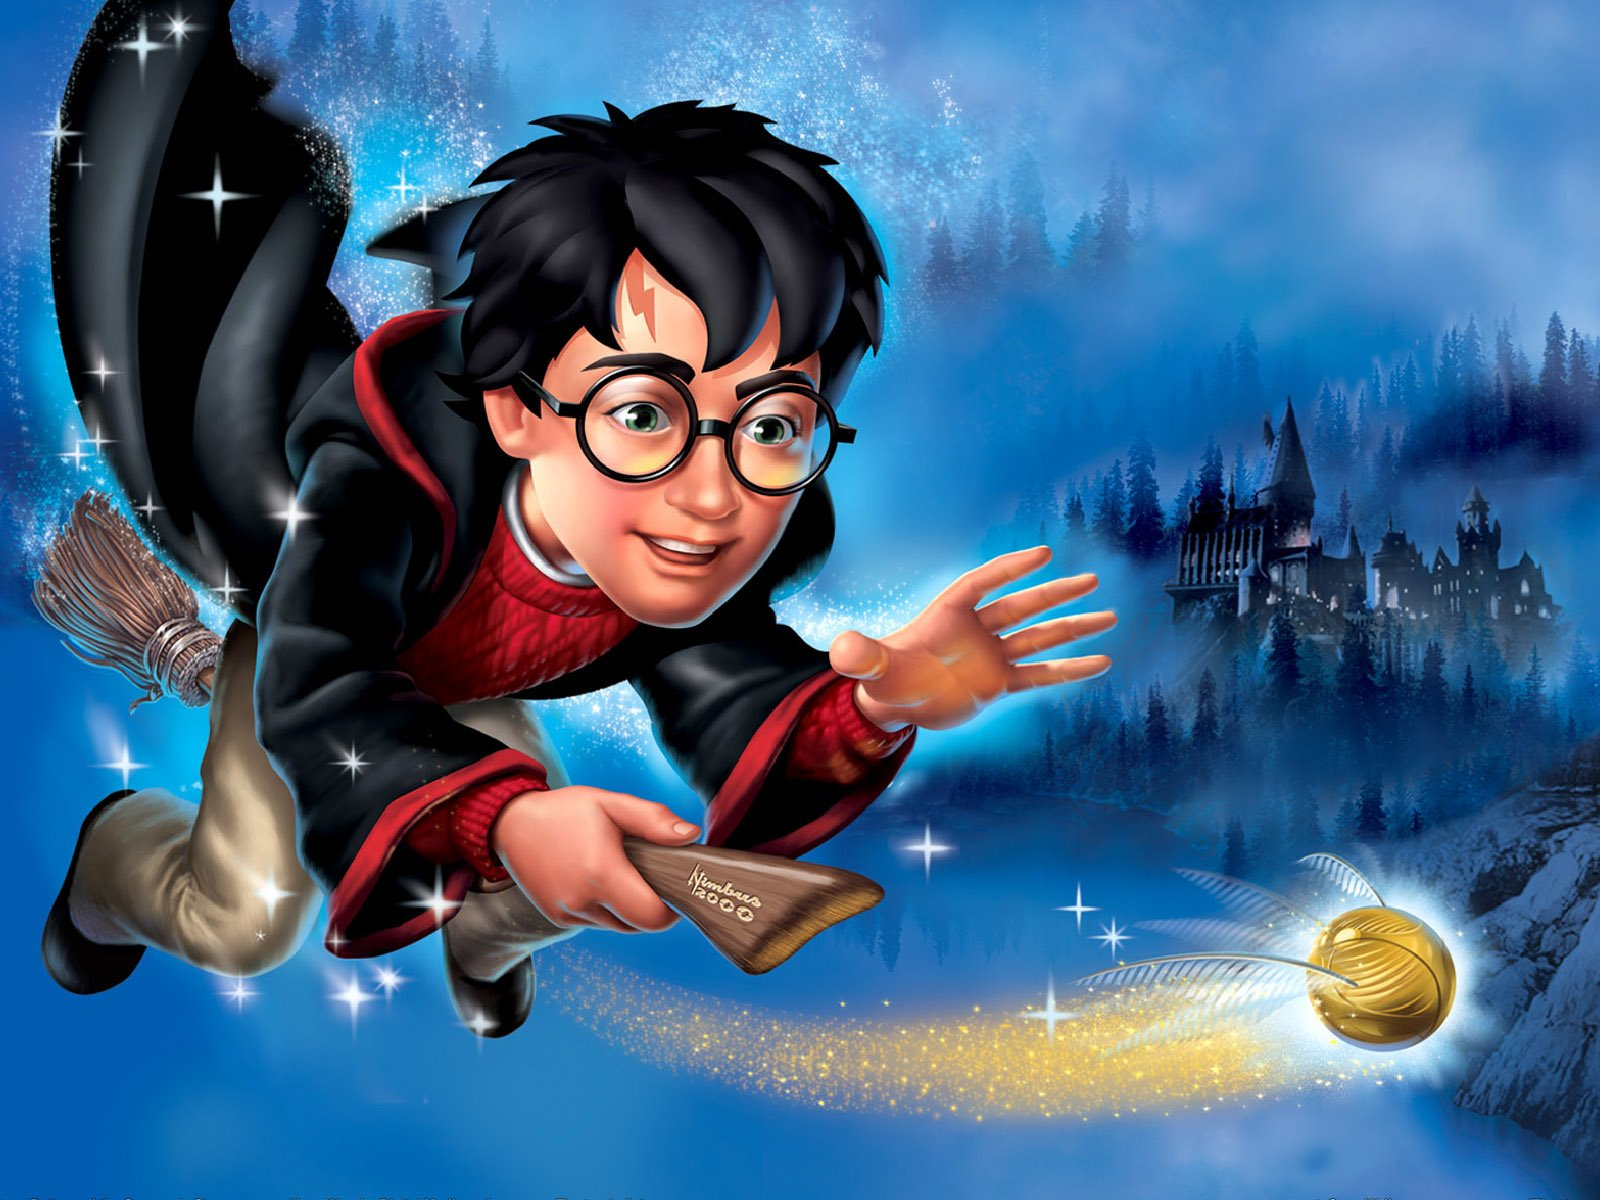 Harry Potter And The Sorcerer's Stone Wallpapers and